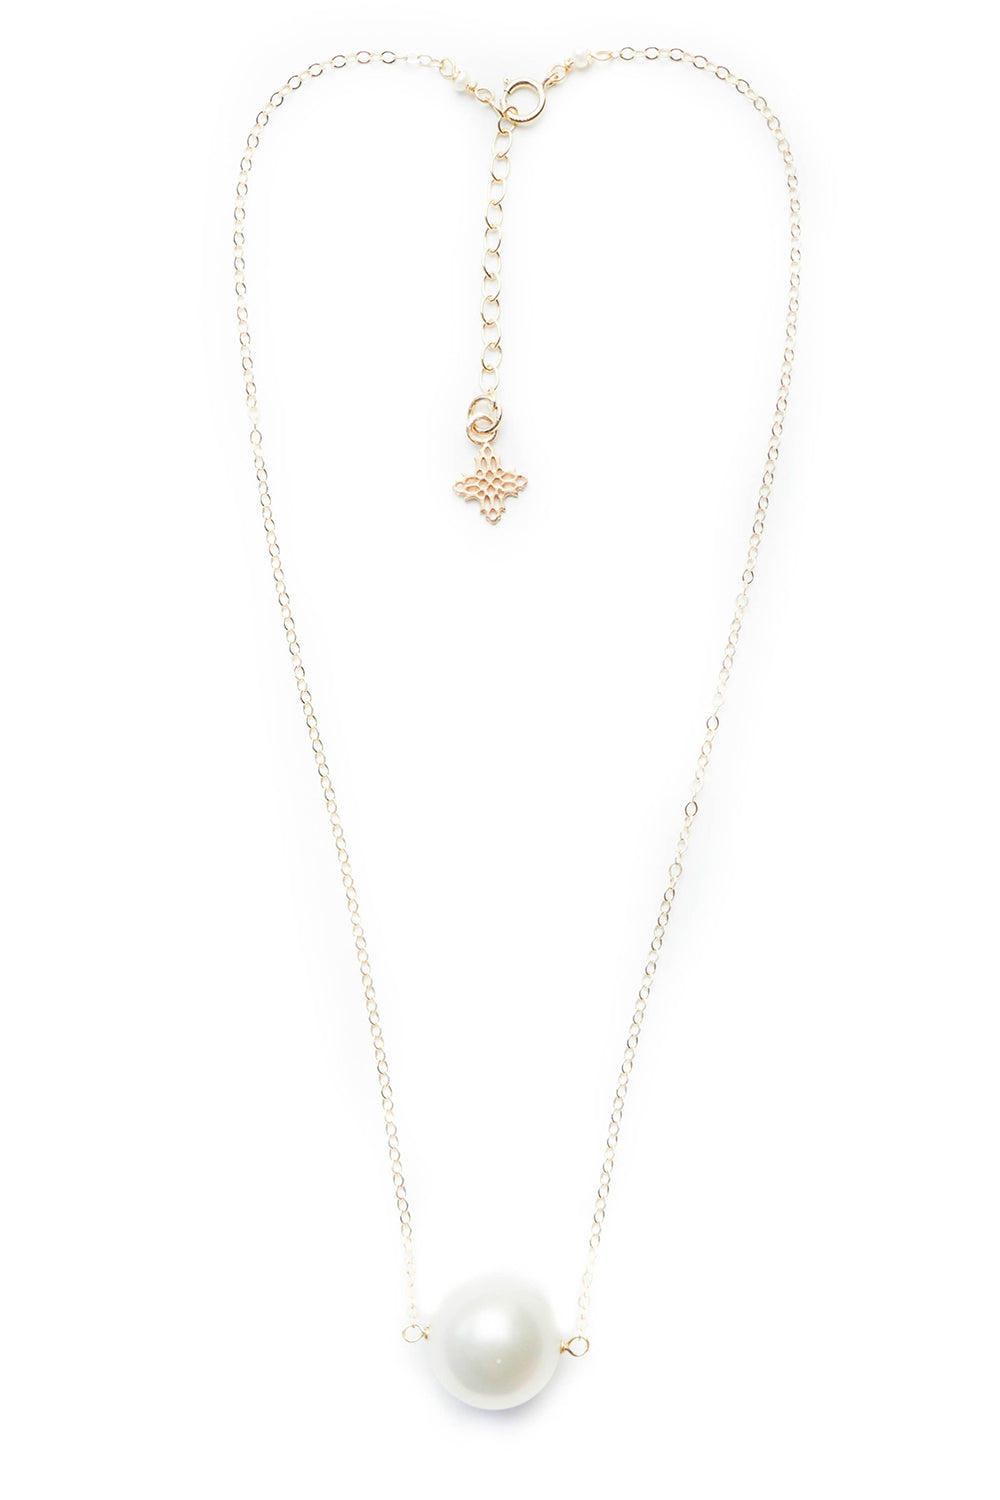 HZN Augusta Pearl Necklace - Gold